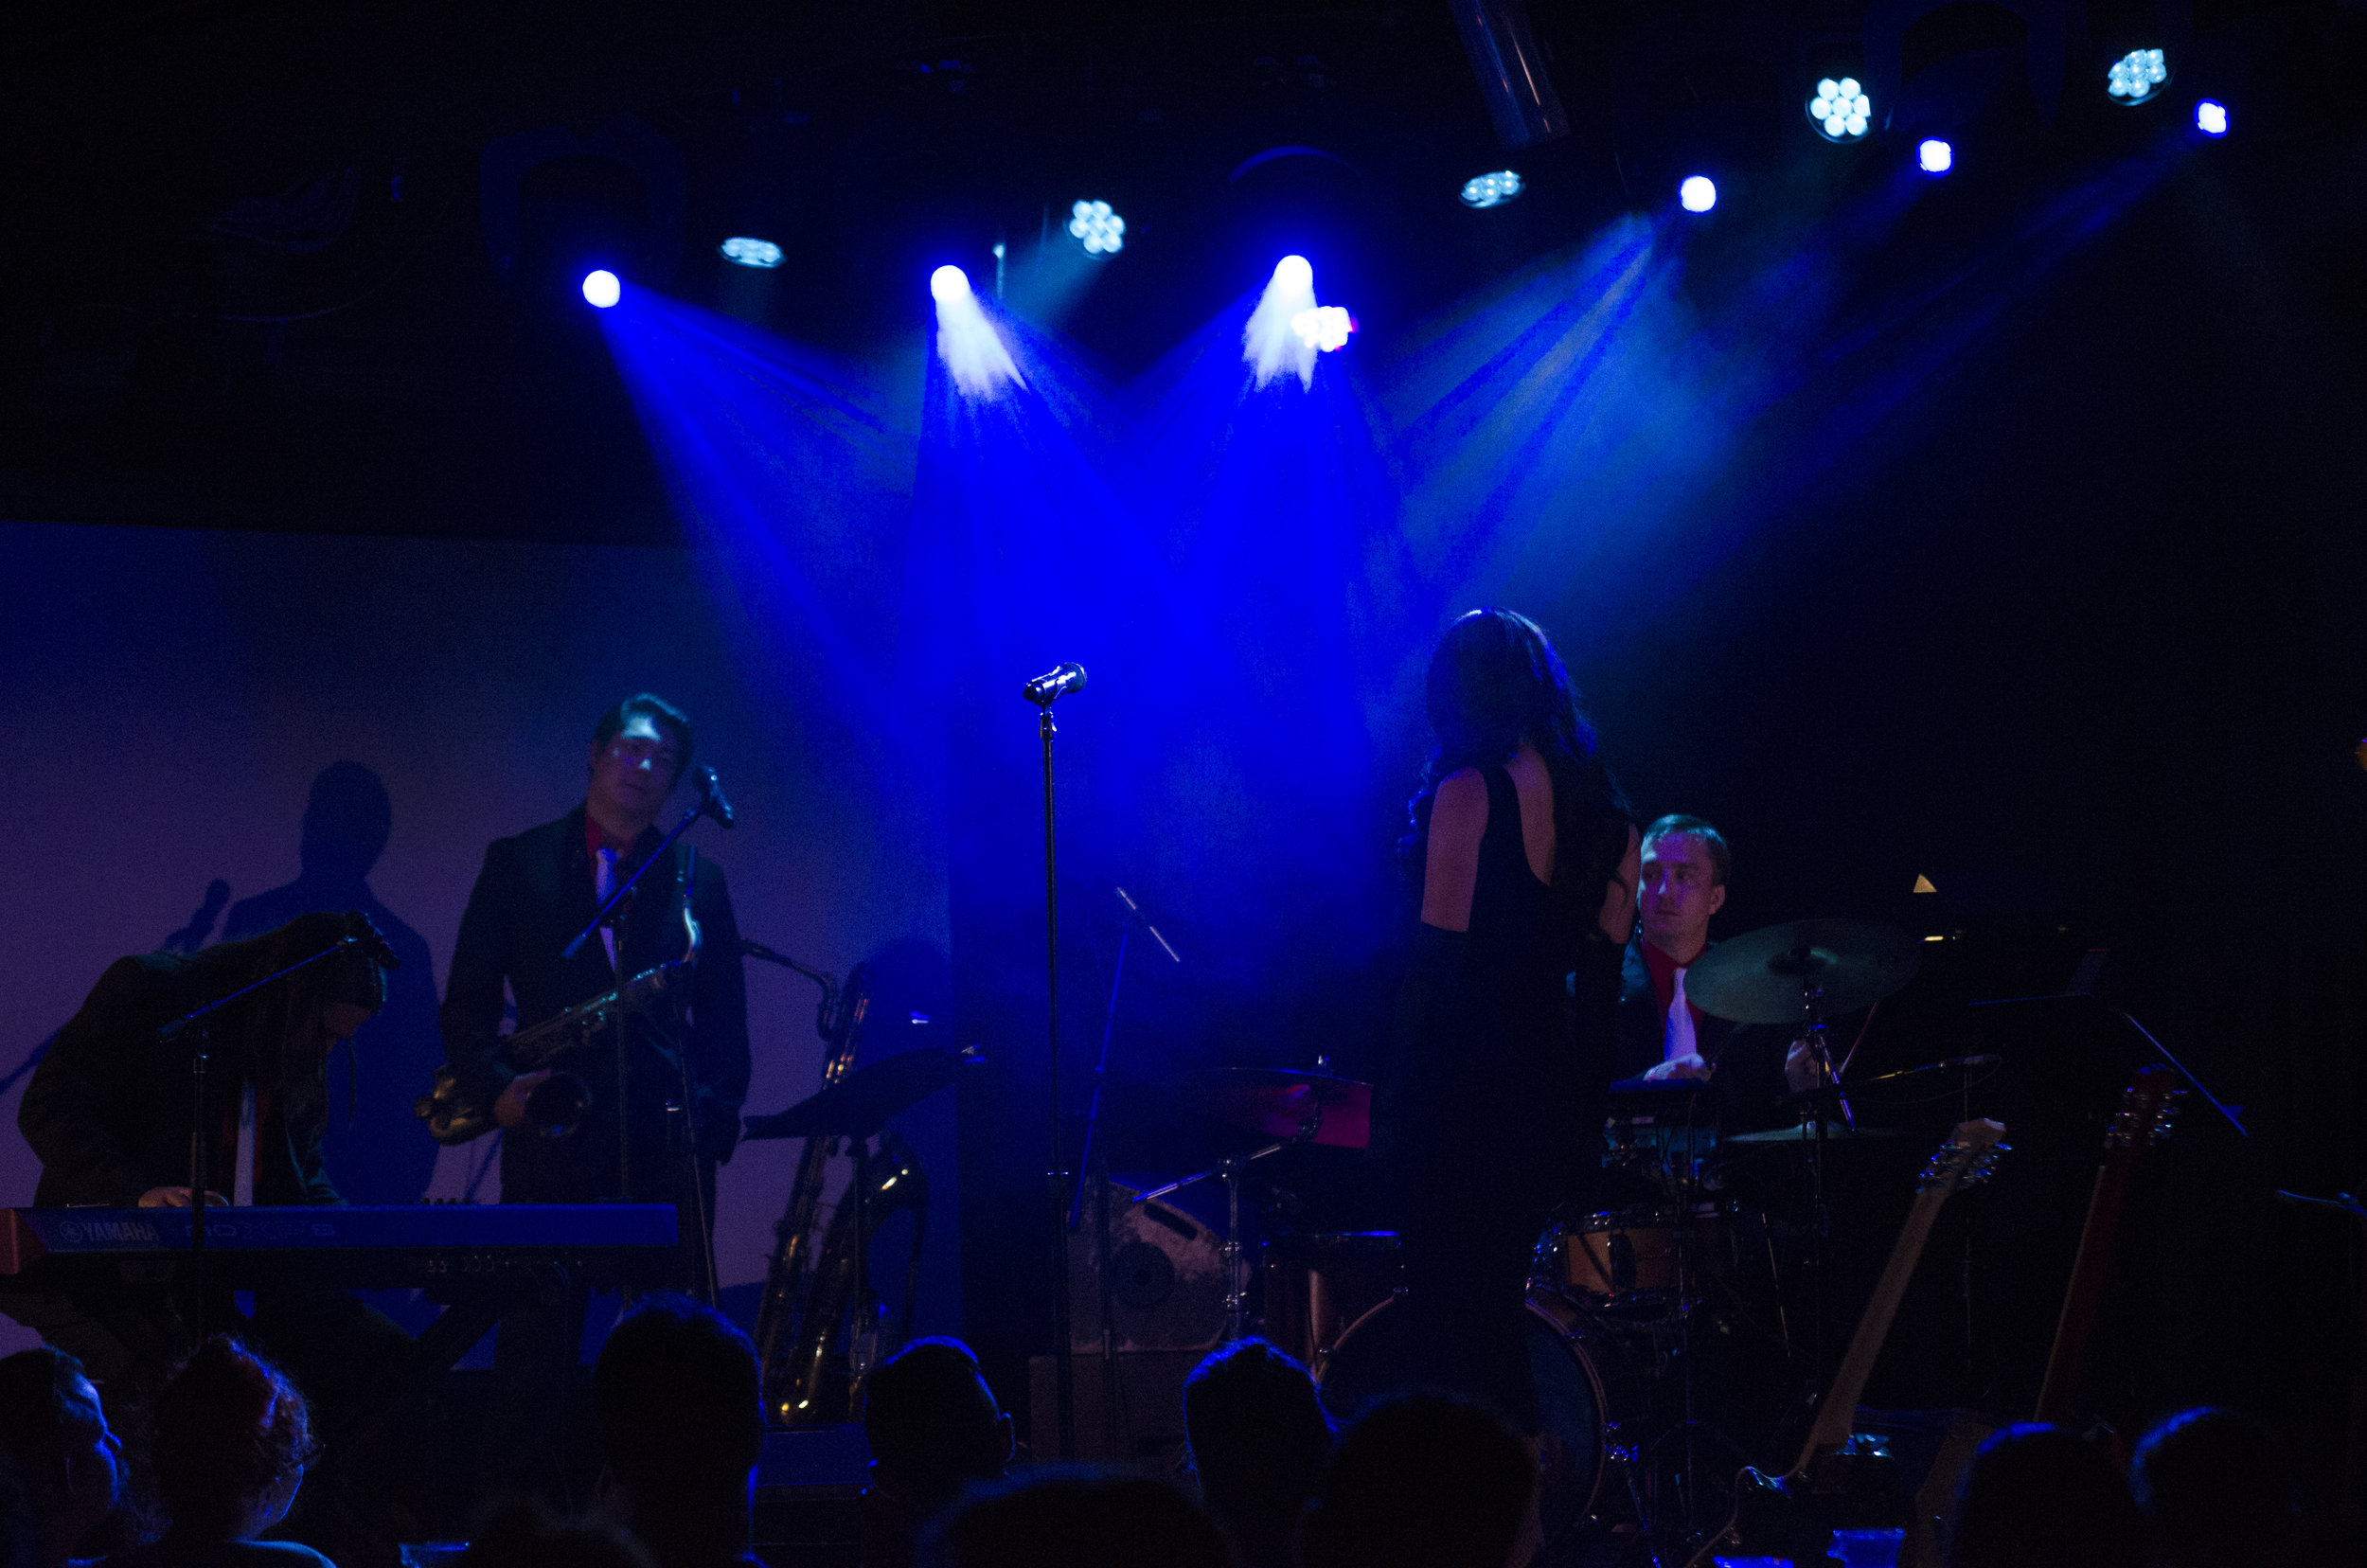 Live at (Le) Poisson Rouge NYC